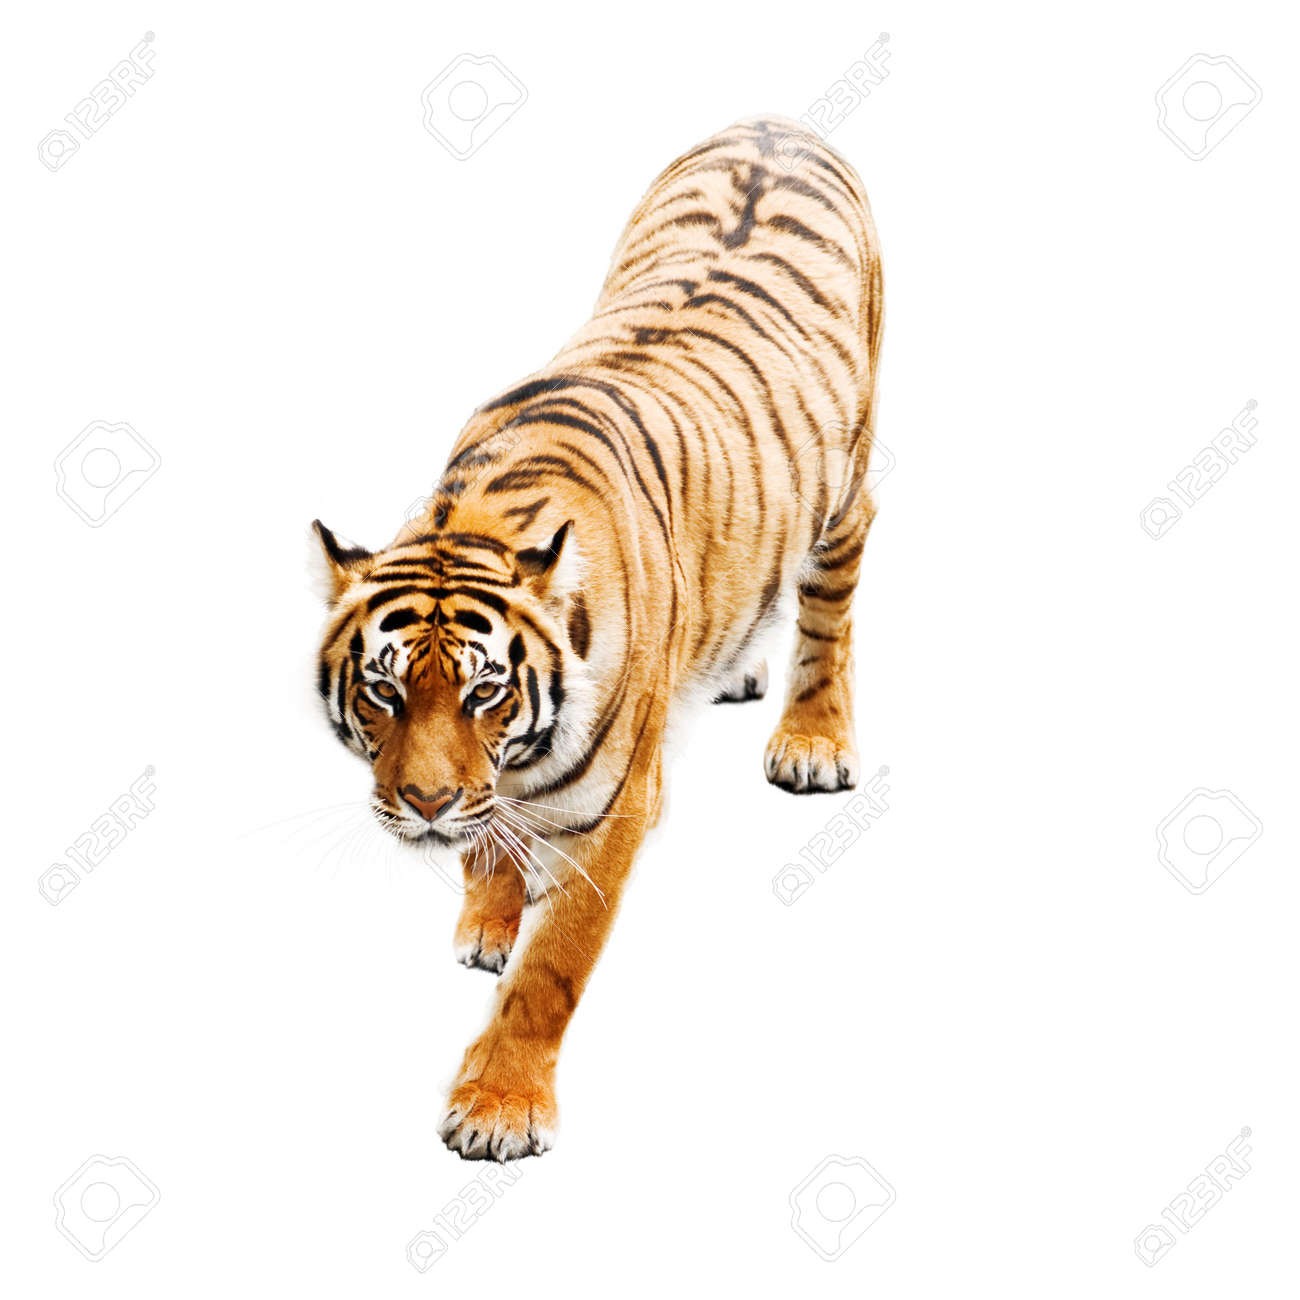 tiger isolated on white background stock photo, picture and royalty